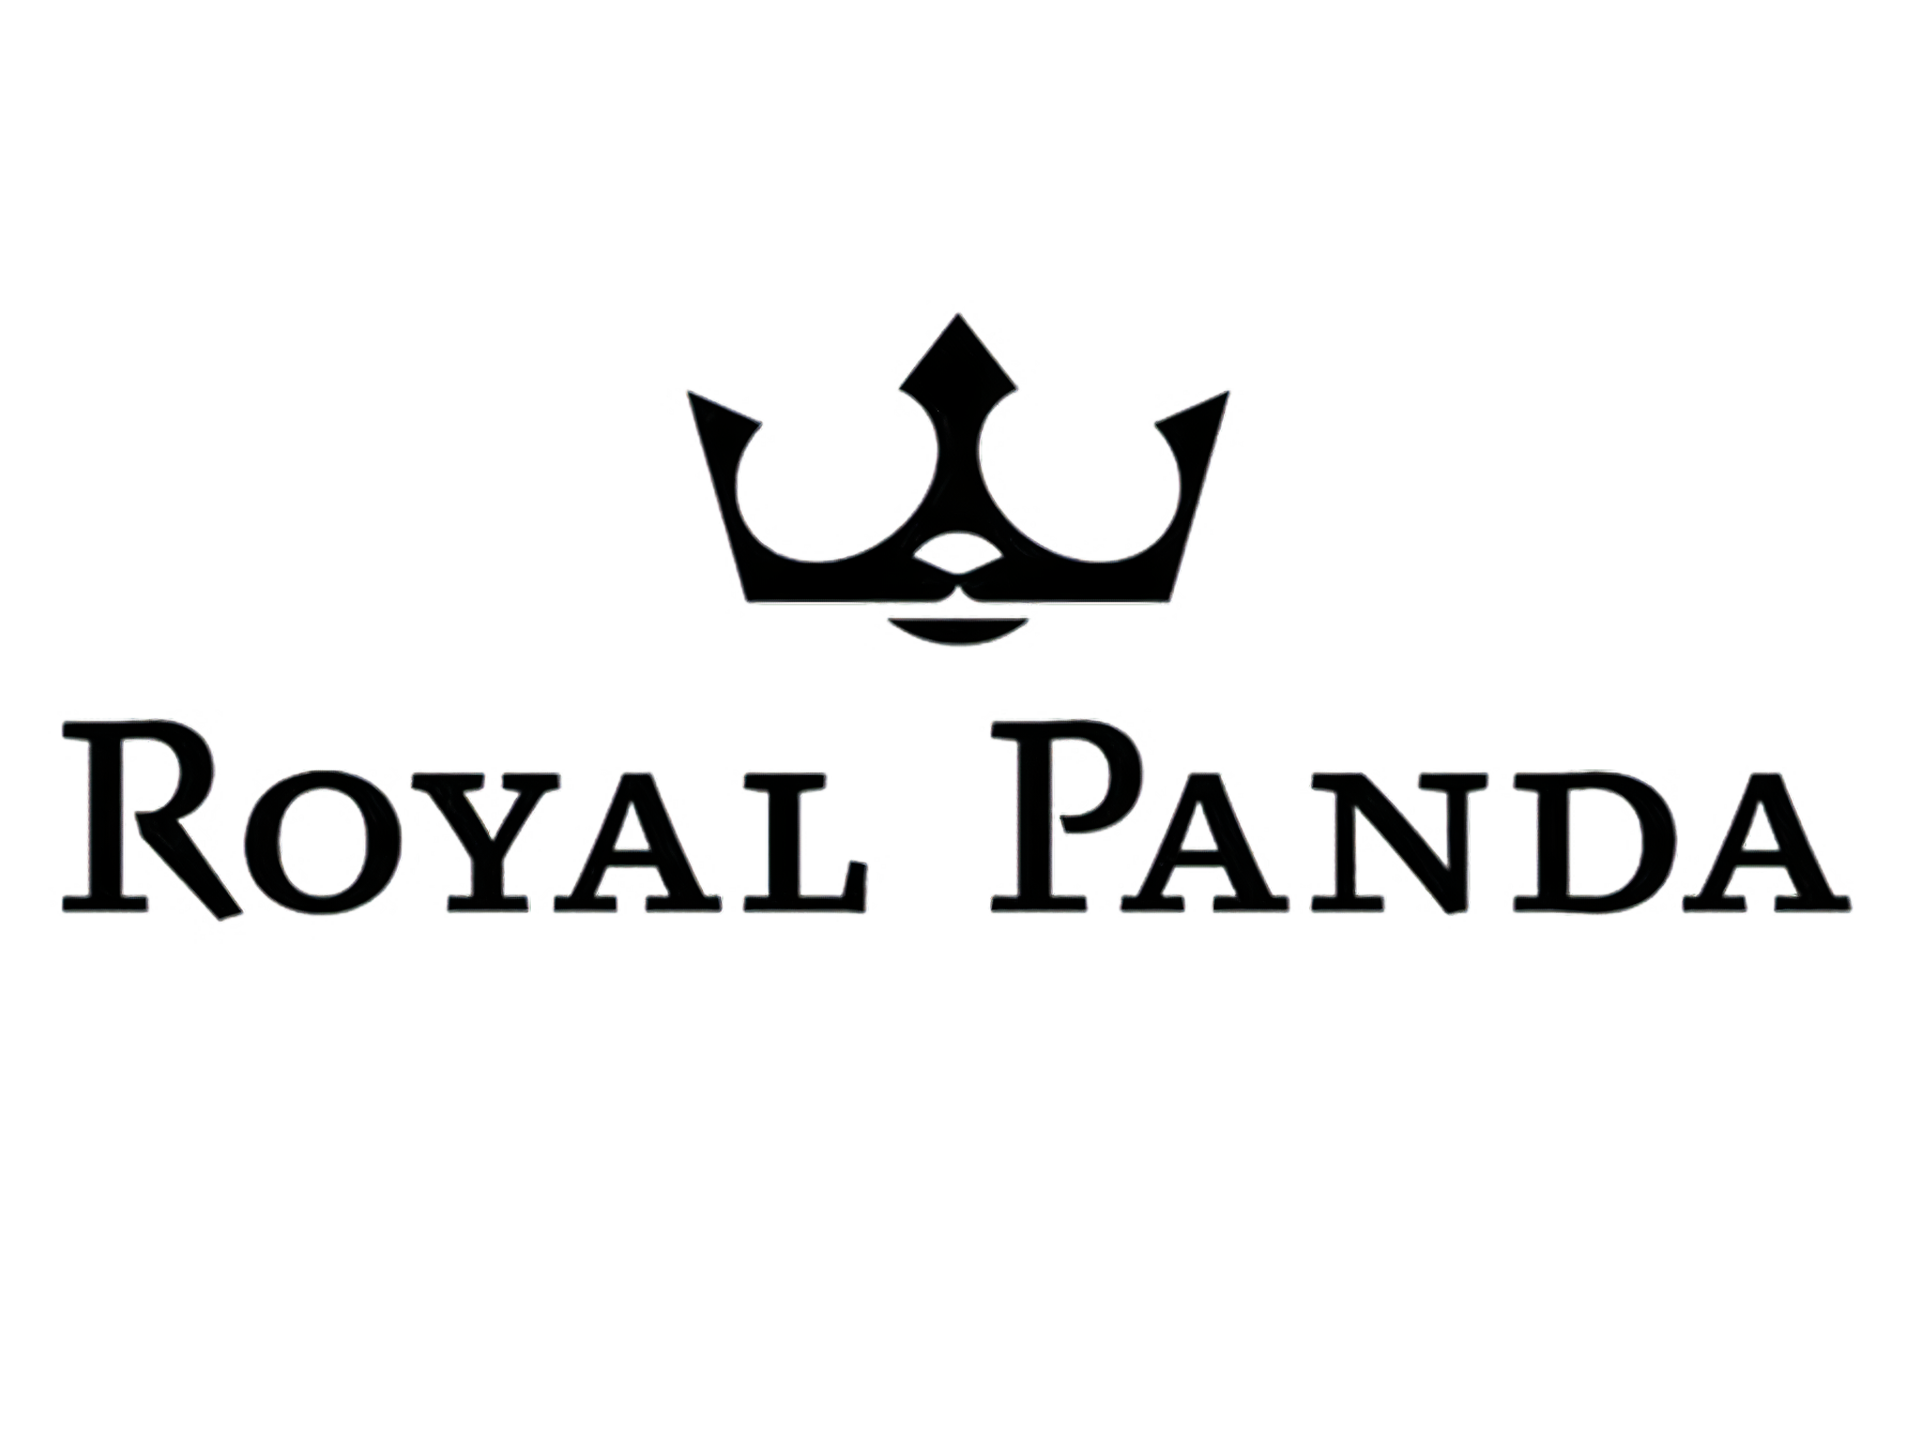 Install the Royal Panda app and enjoy betting and casino games.